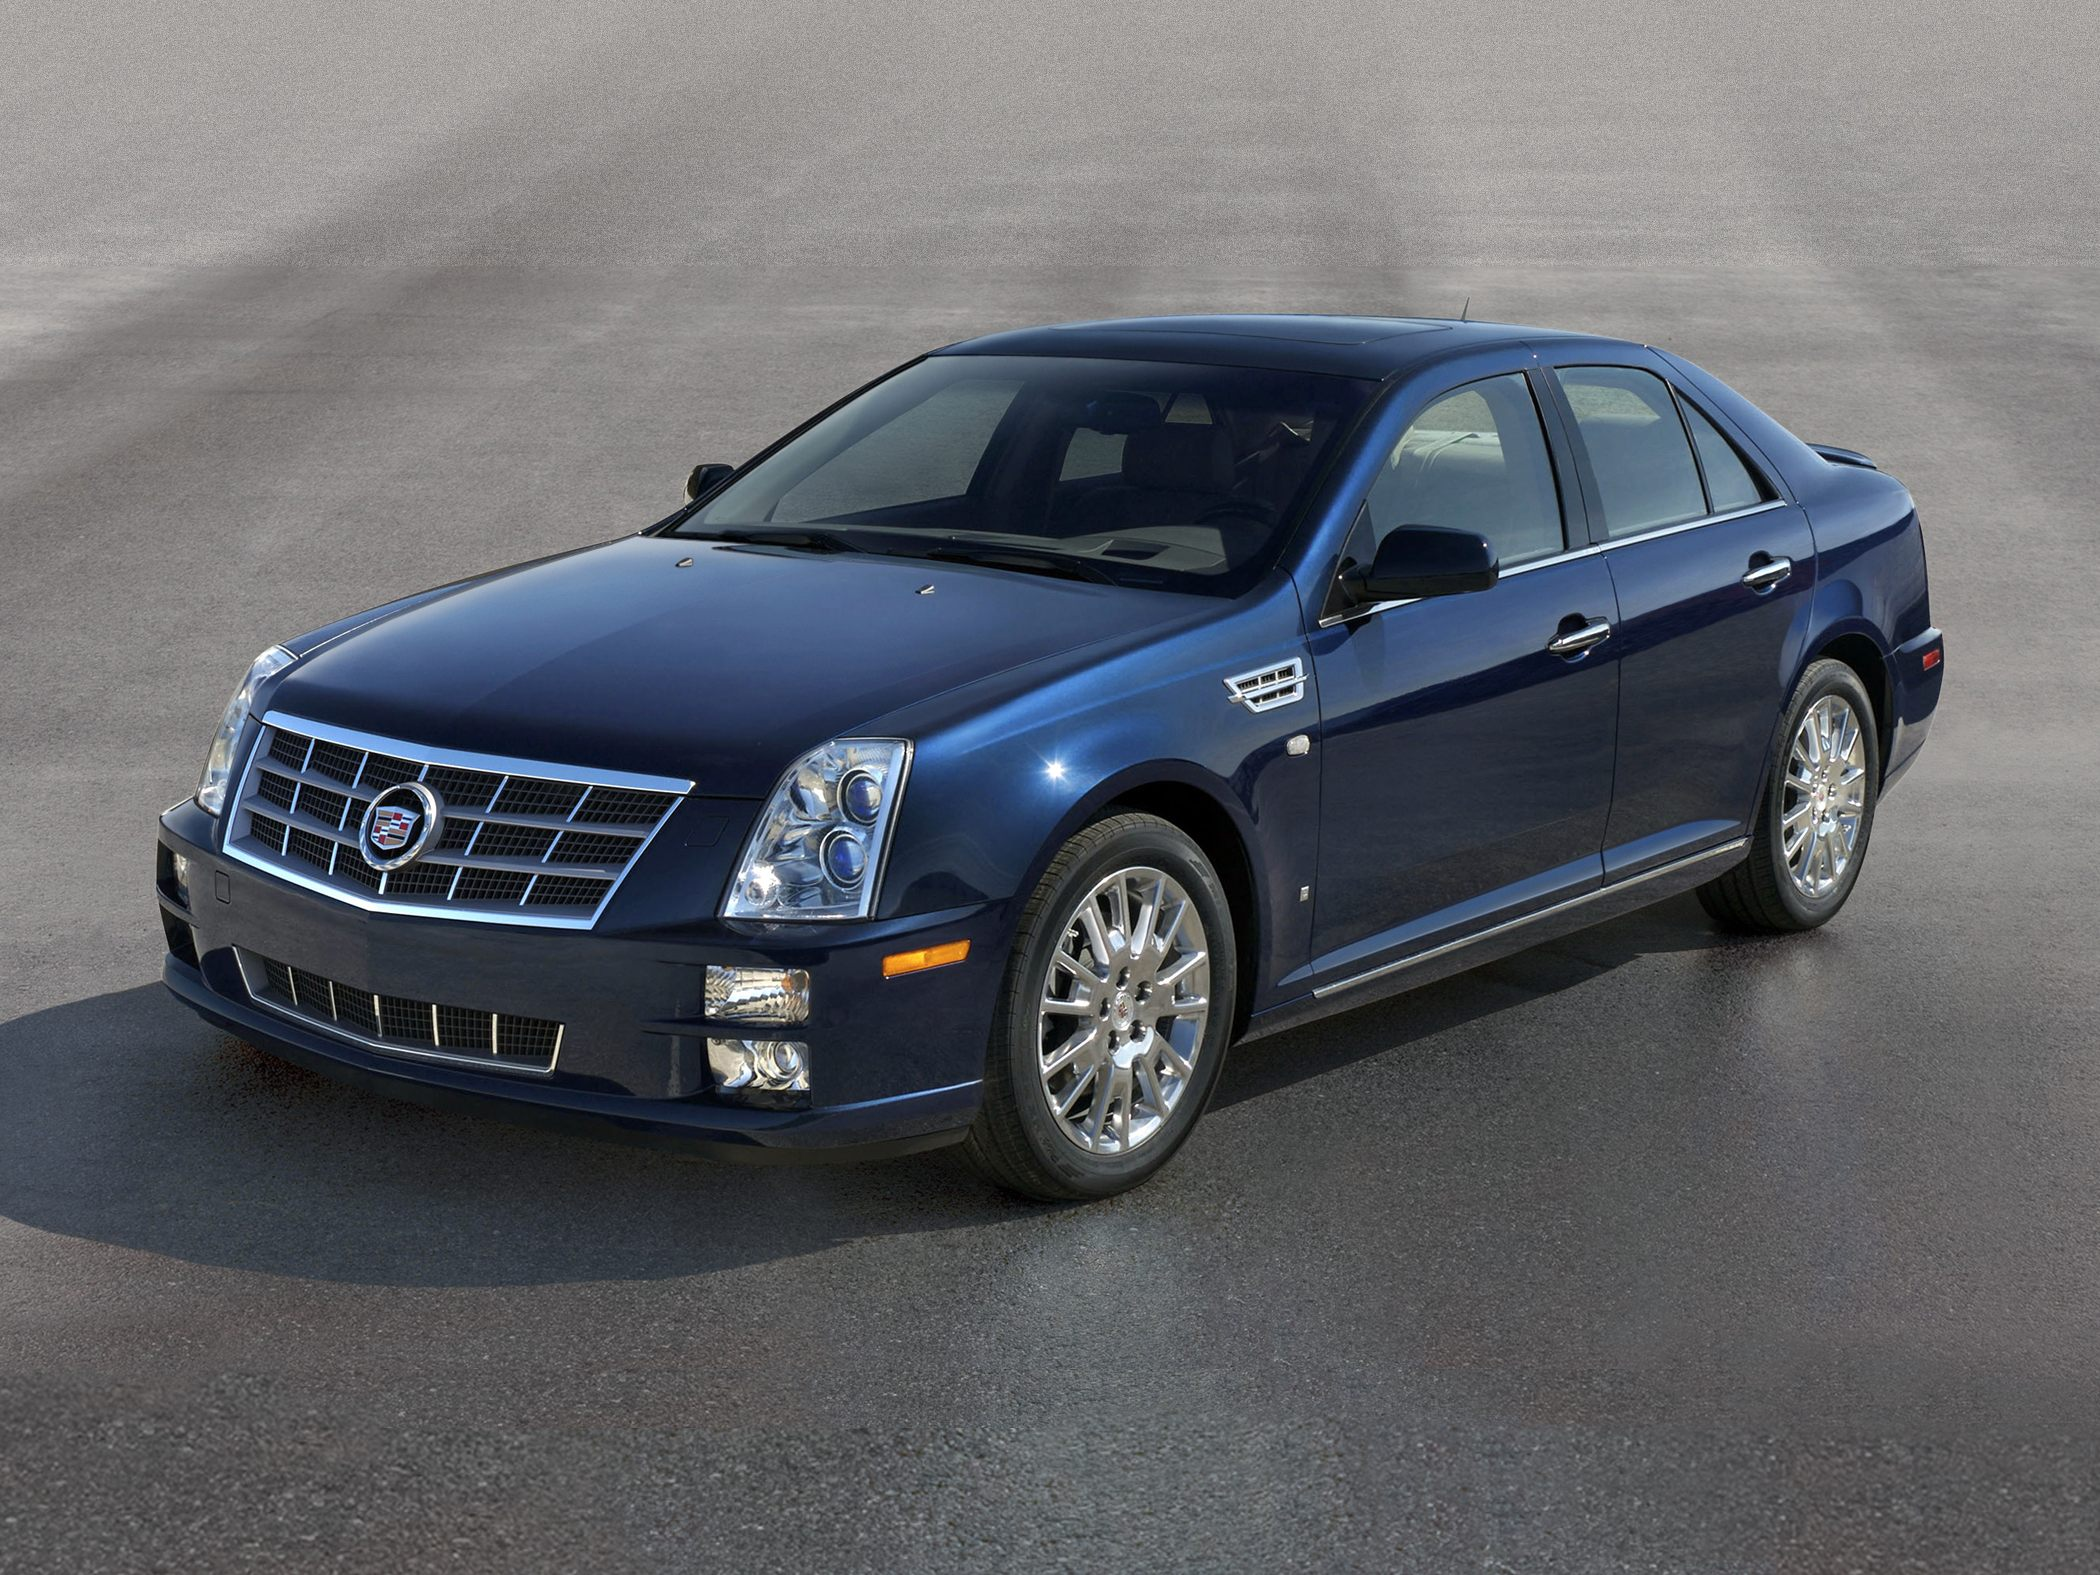 review car cadillac and photo the at pictures look amazing images sts